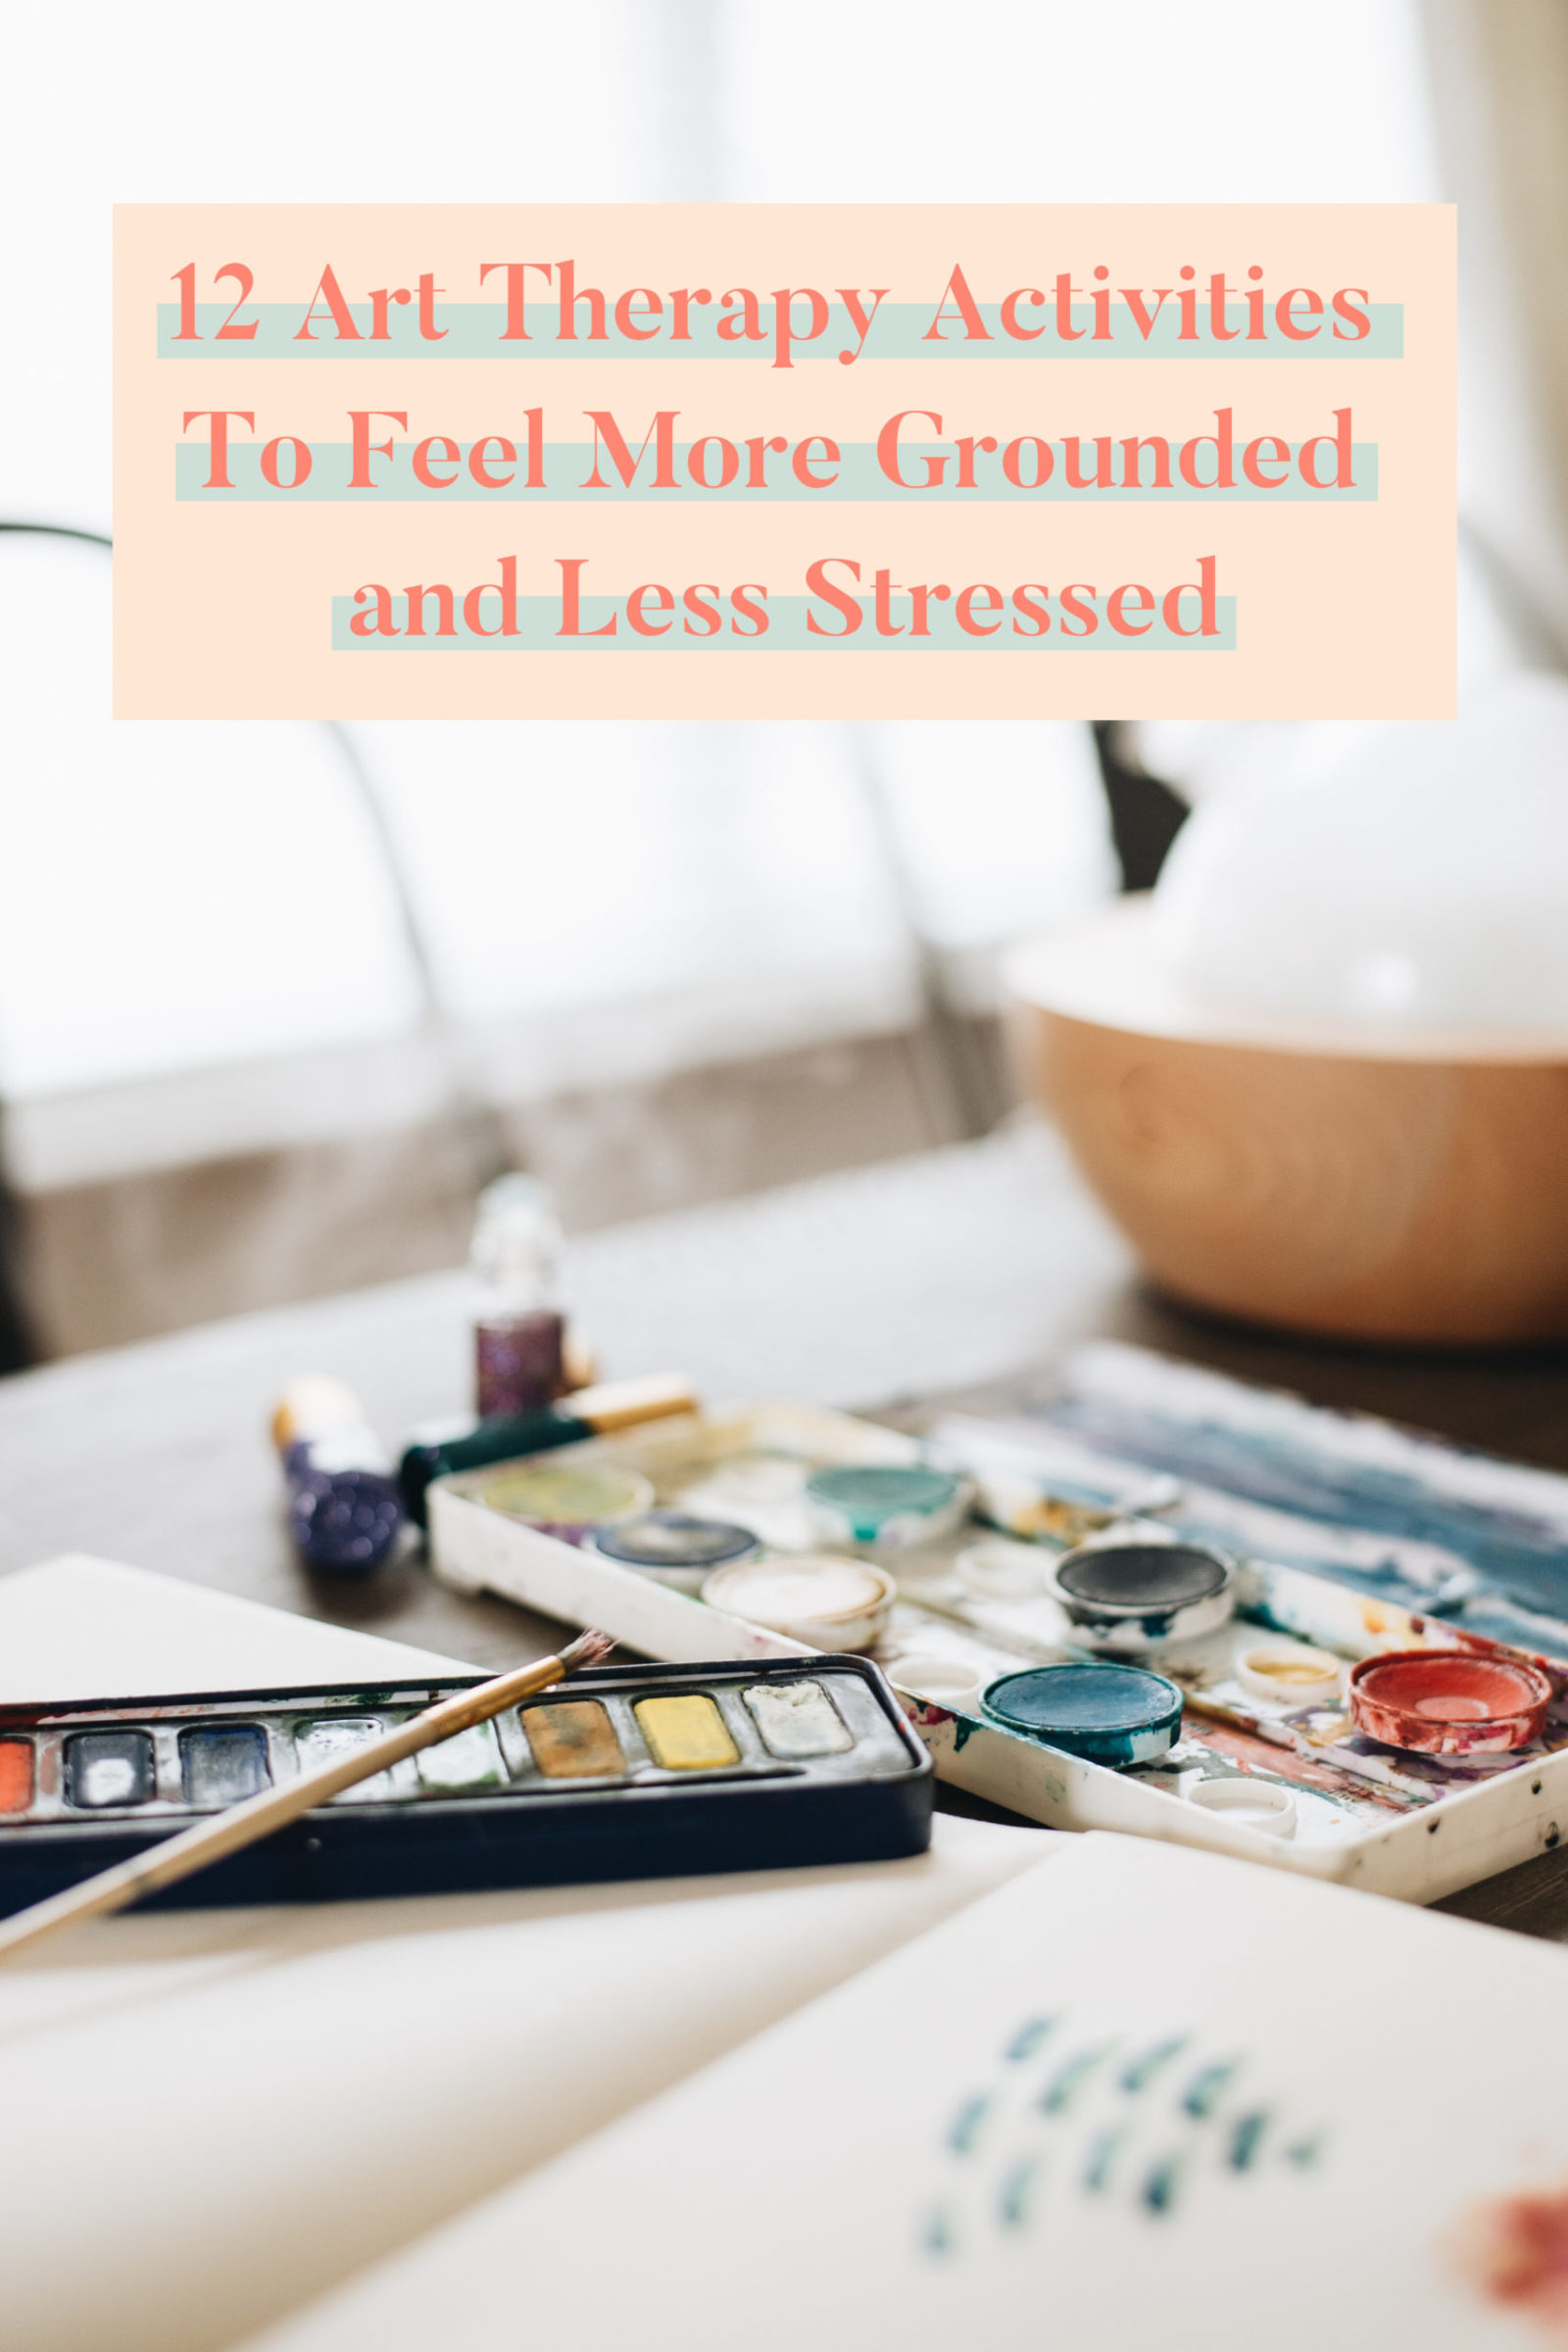 12 Art Therapy Activities To Feel More Grounded and Less Stressed | Whimsy + Wellness